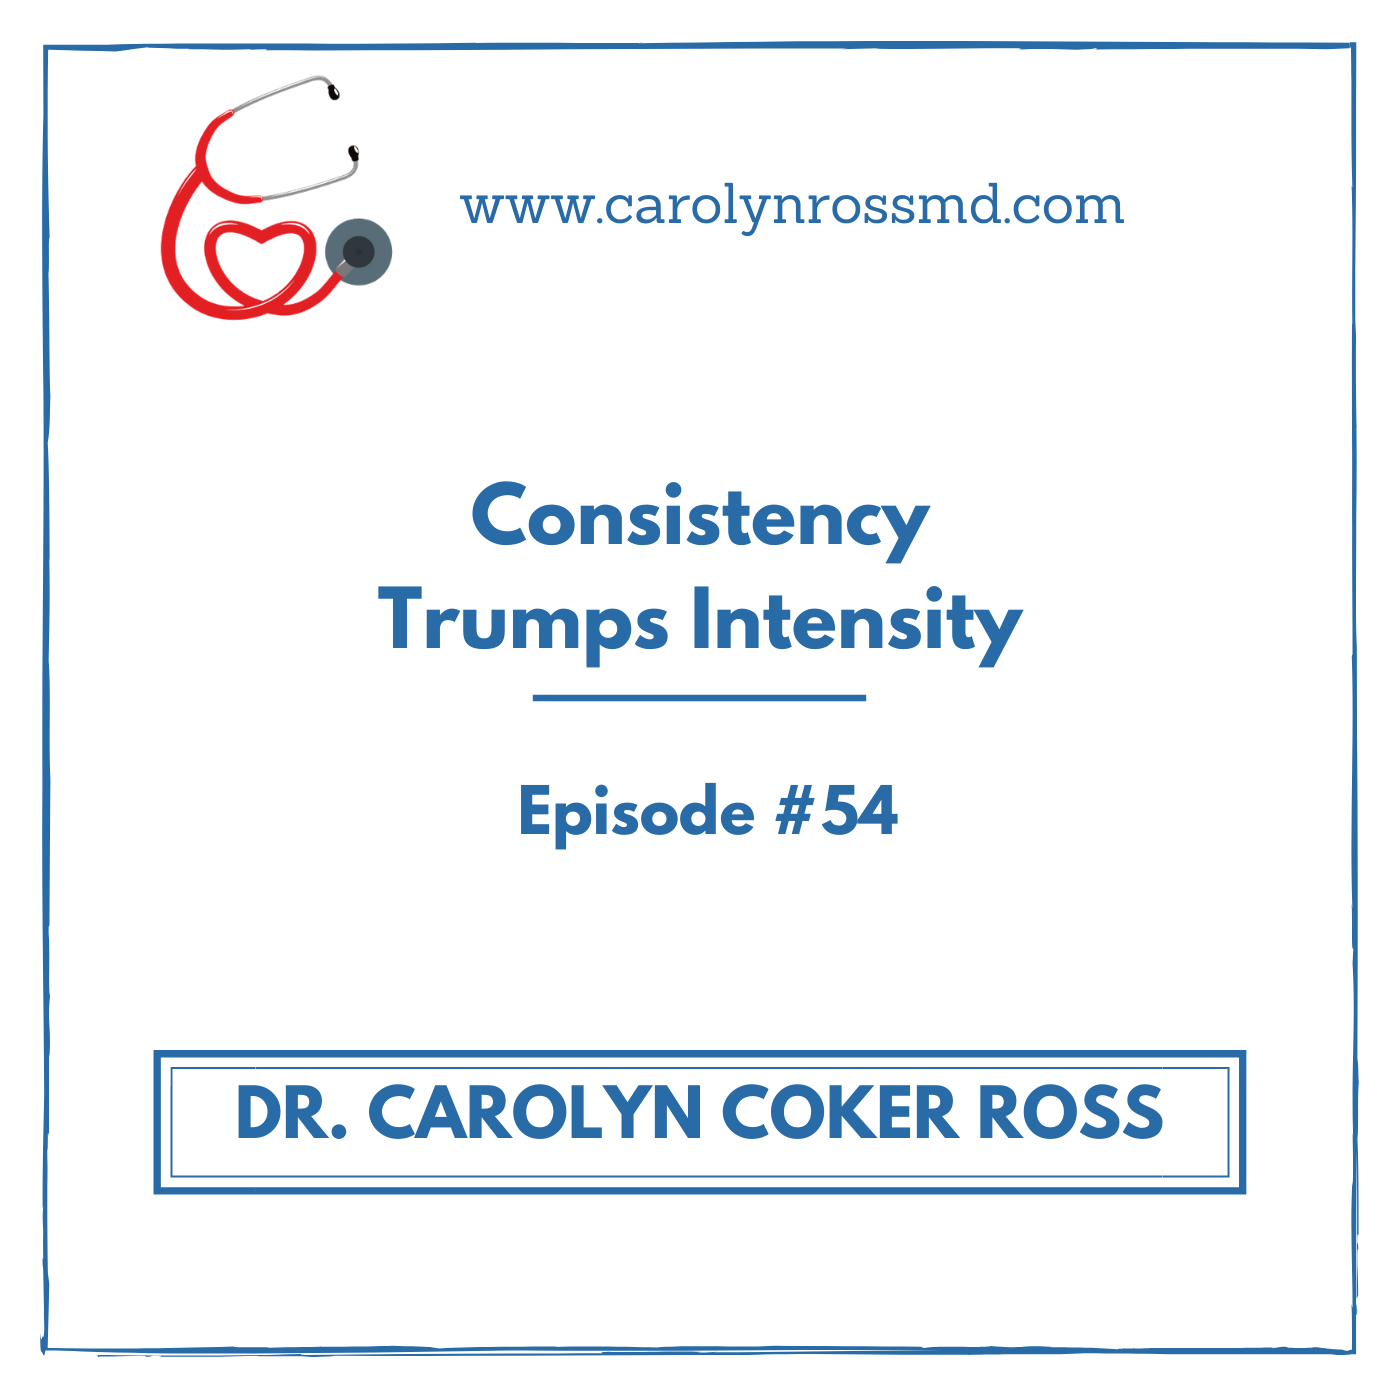 Consistency Trumps Intensity